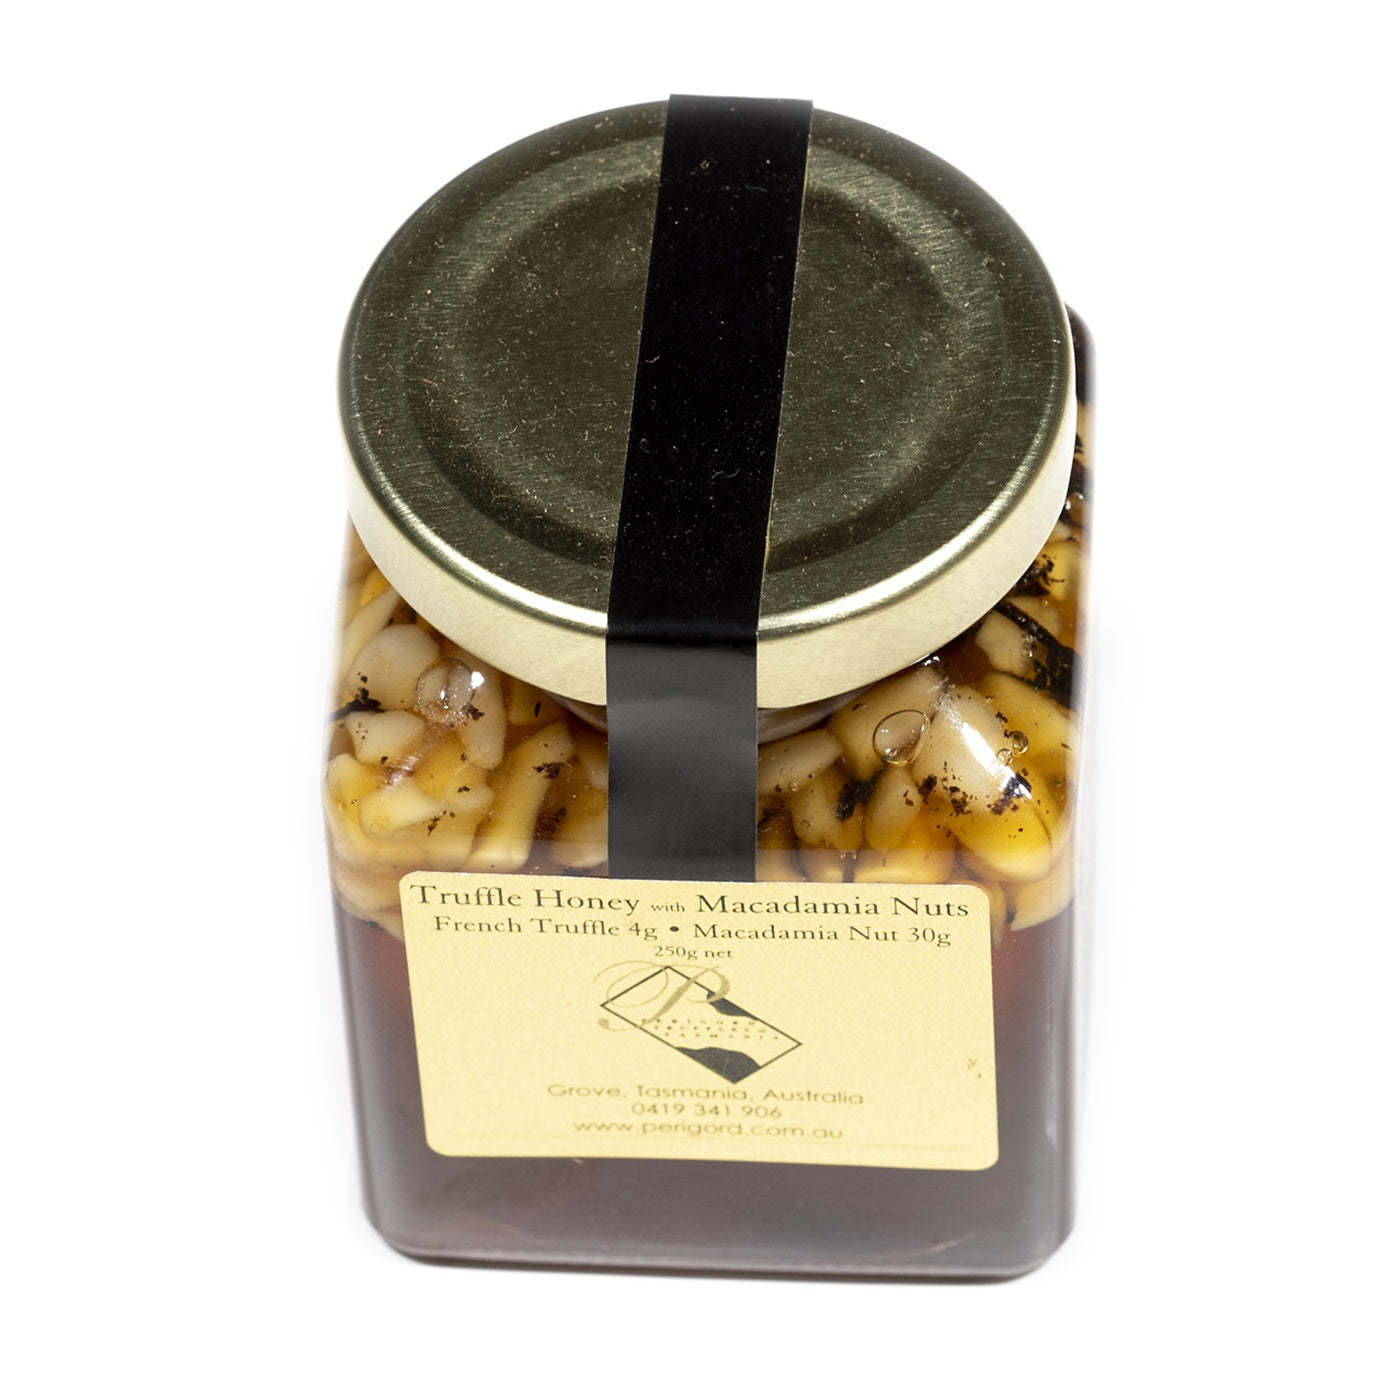 Perigord Truffles of Tasmania - Truffle Honey with Macadamia Nuts - 250g